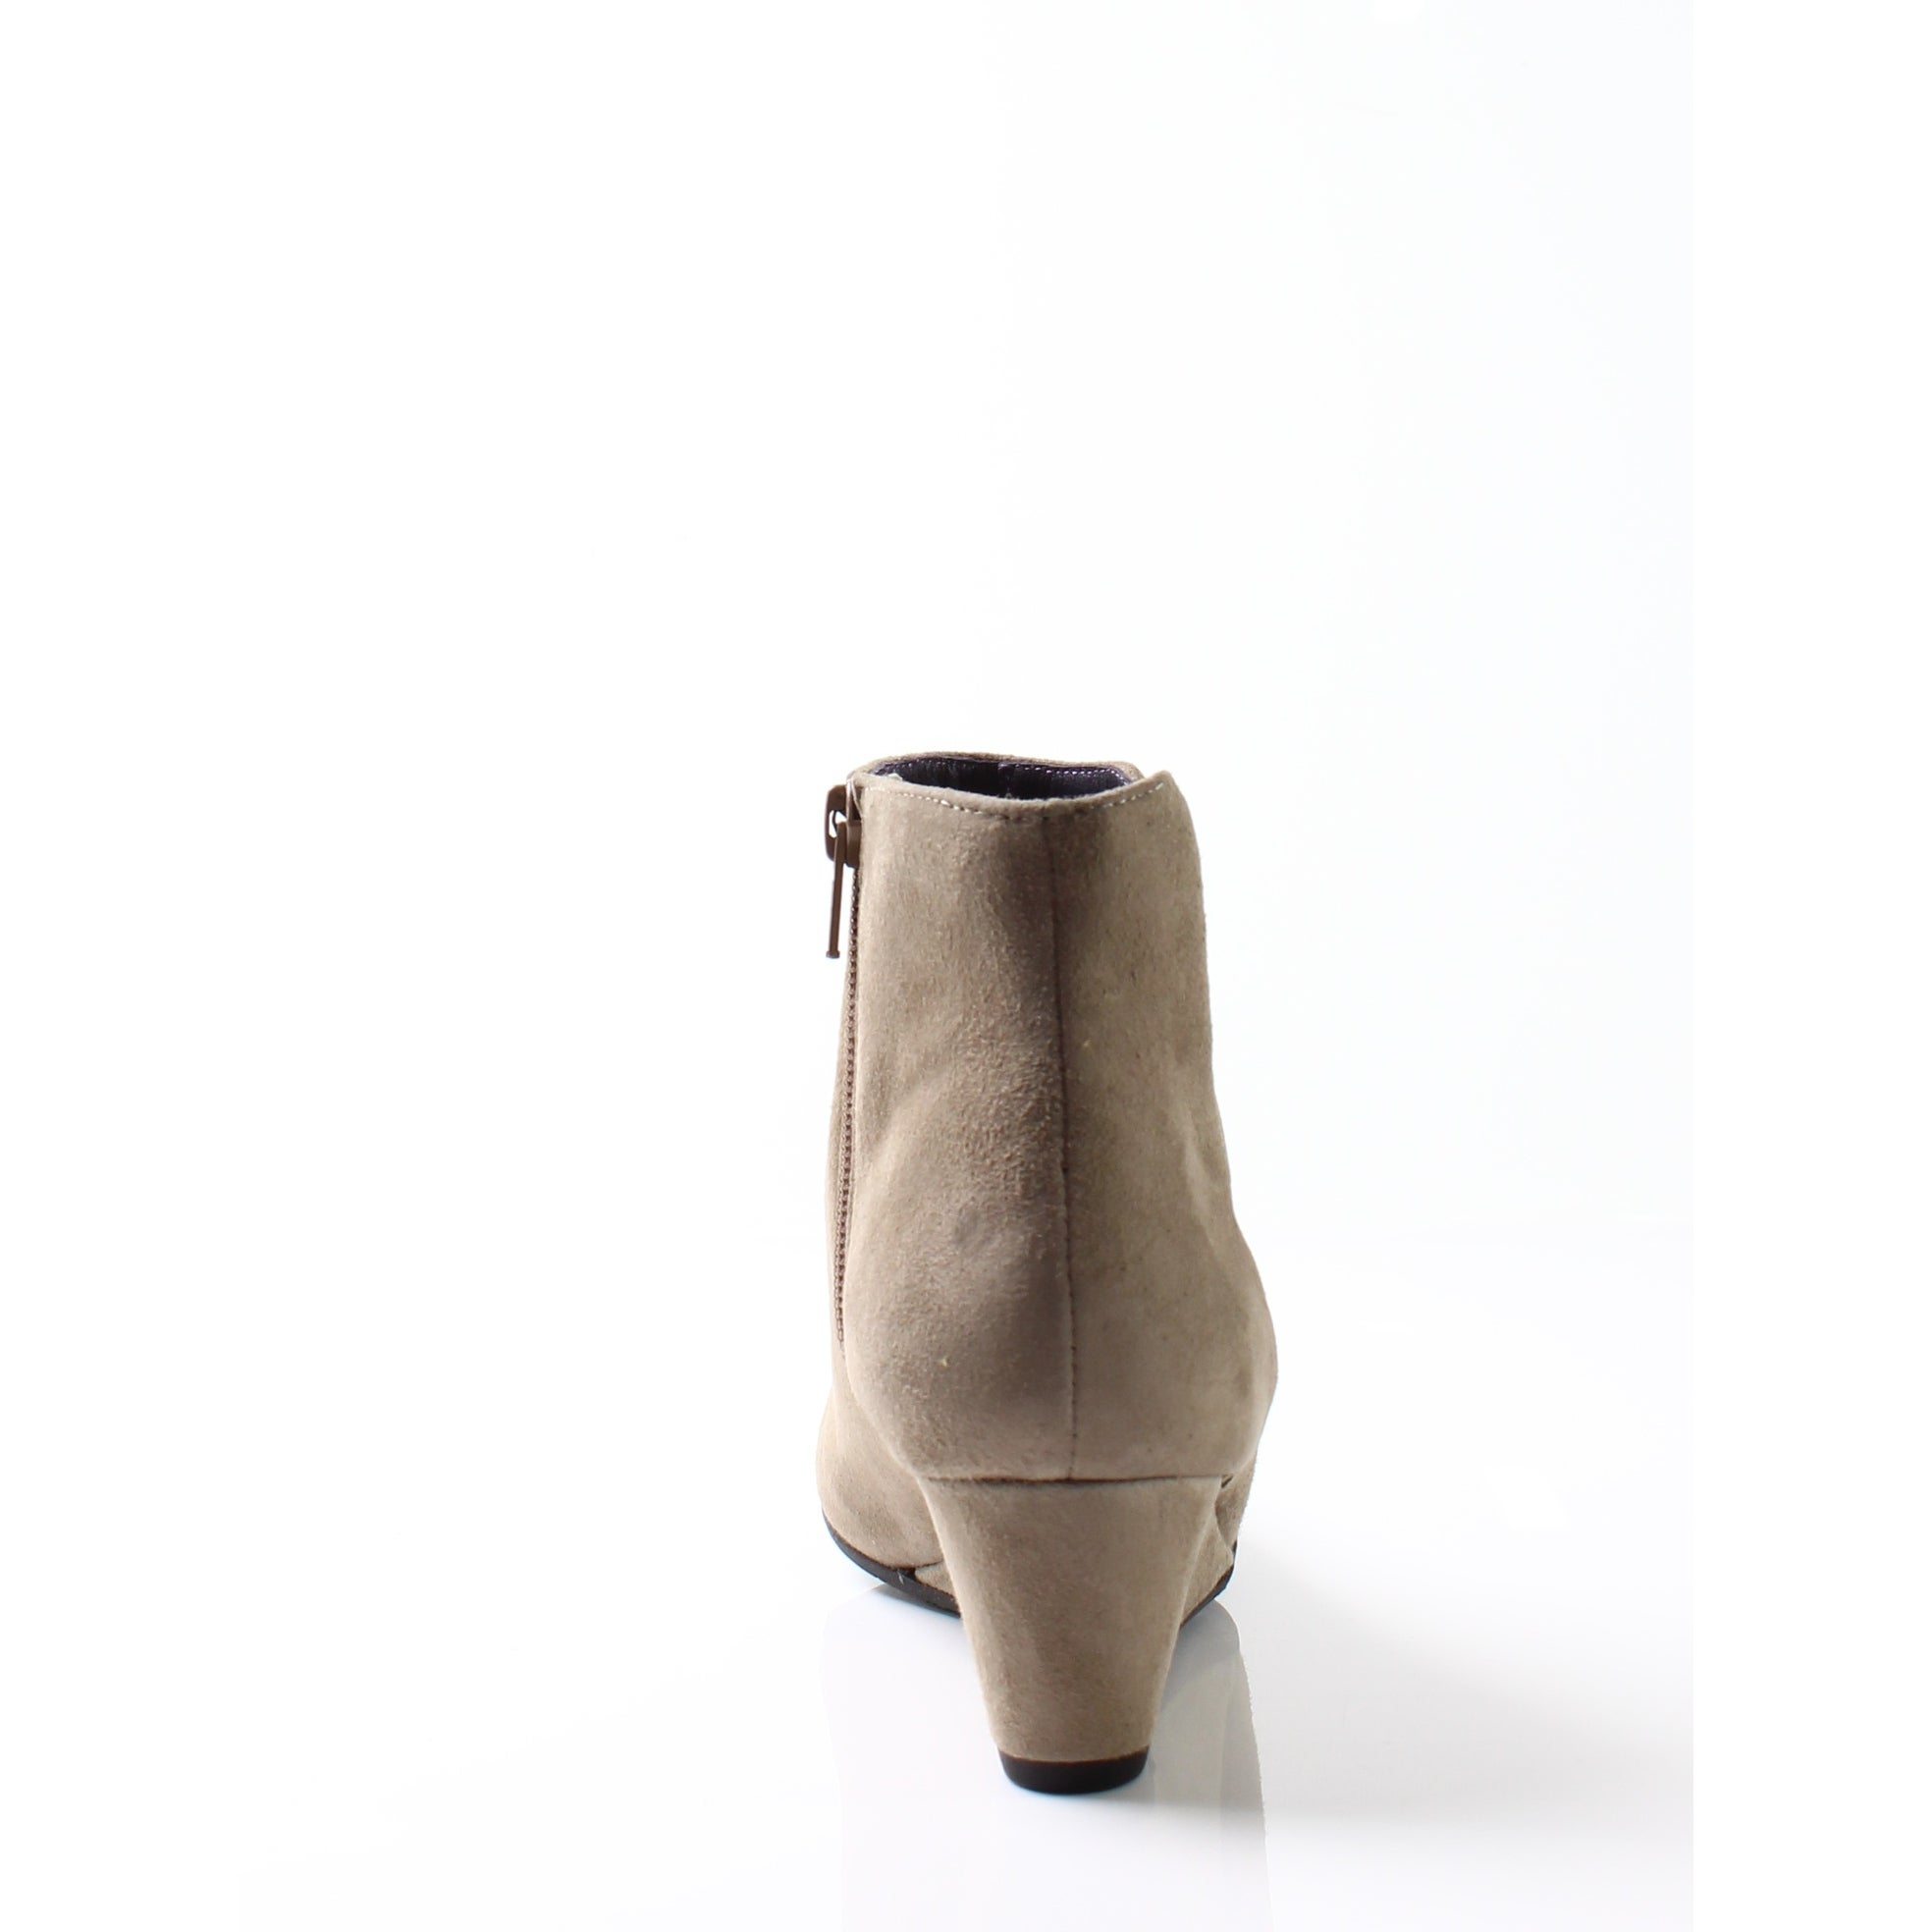 942b9f9e6002 Shop Vaneli Beige Women s Shoes Size 5.5M Laban Suede Wedge Boot - Free  Shipping On Orders Over  45 - Overstock.com - 19814573